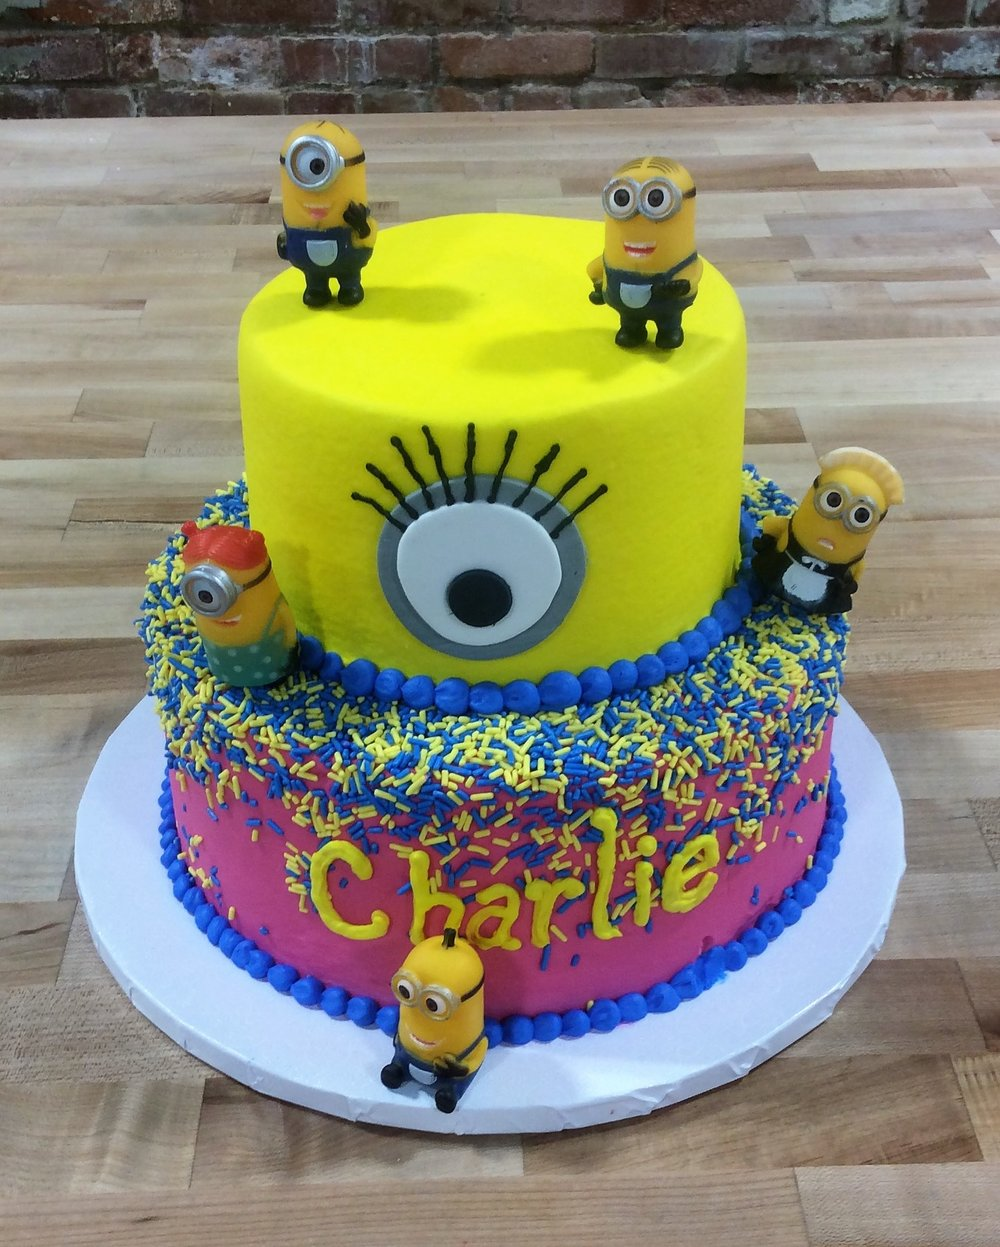 Party Cake with Minion Figures